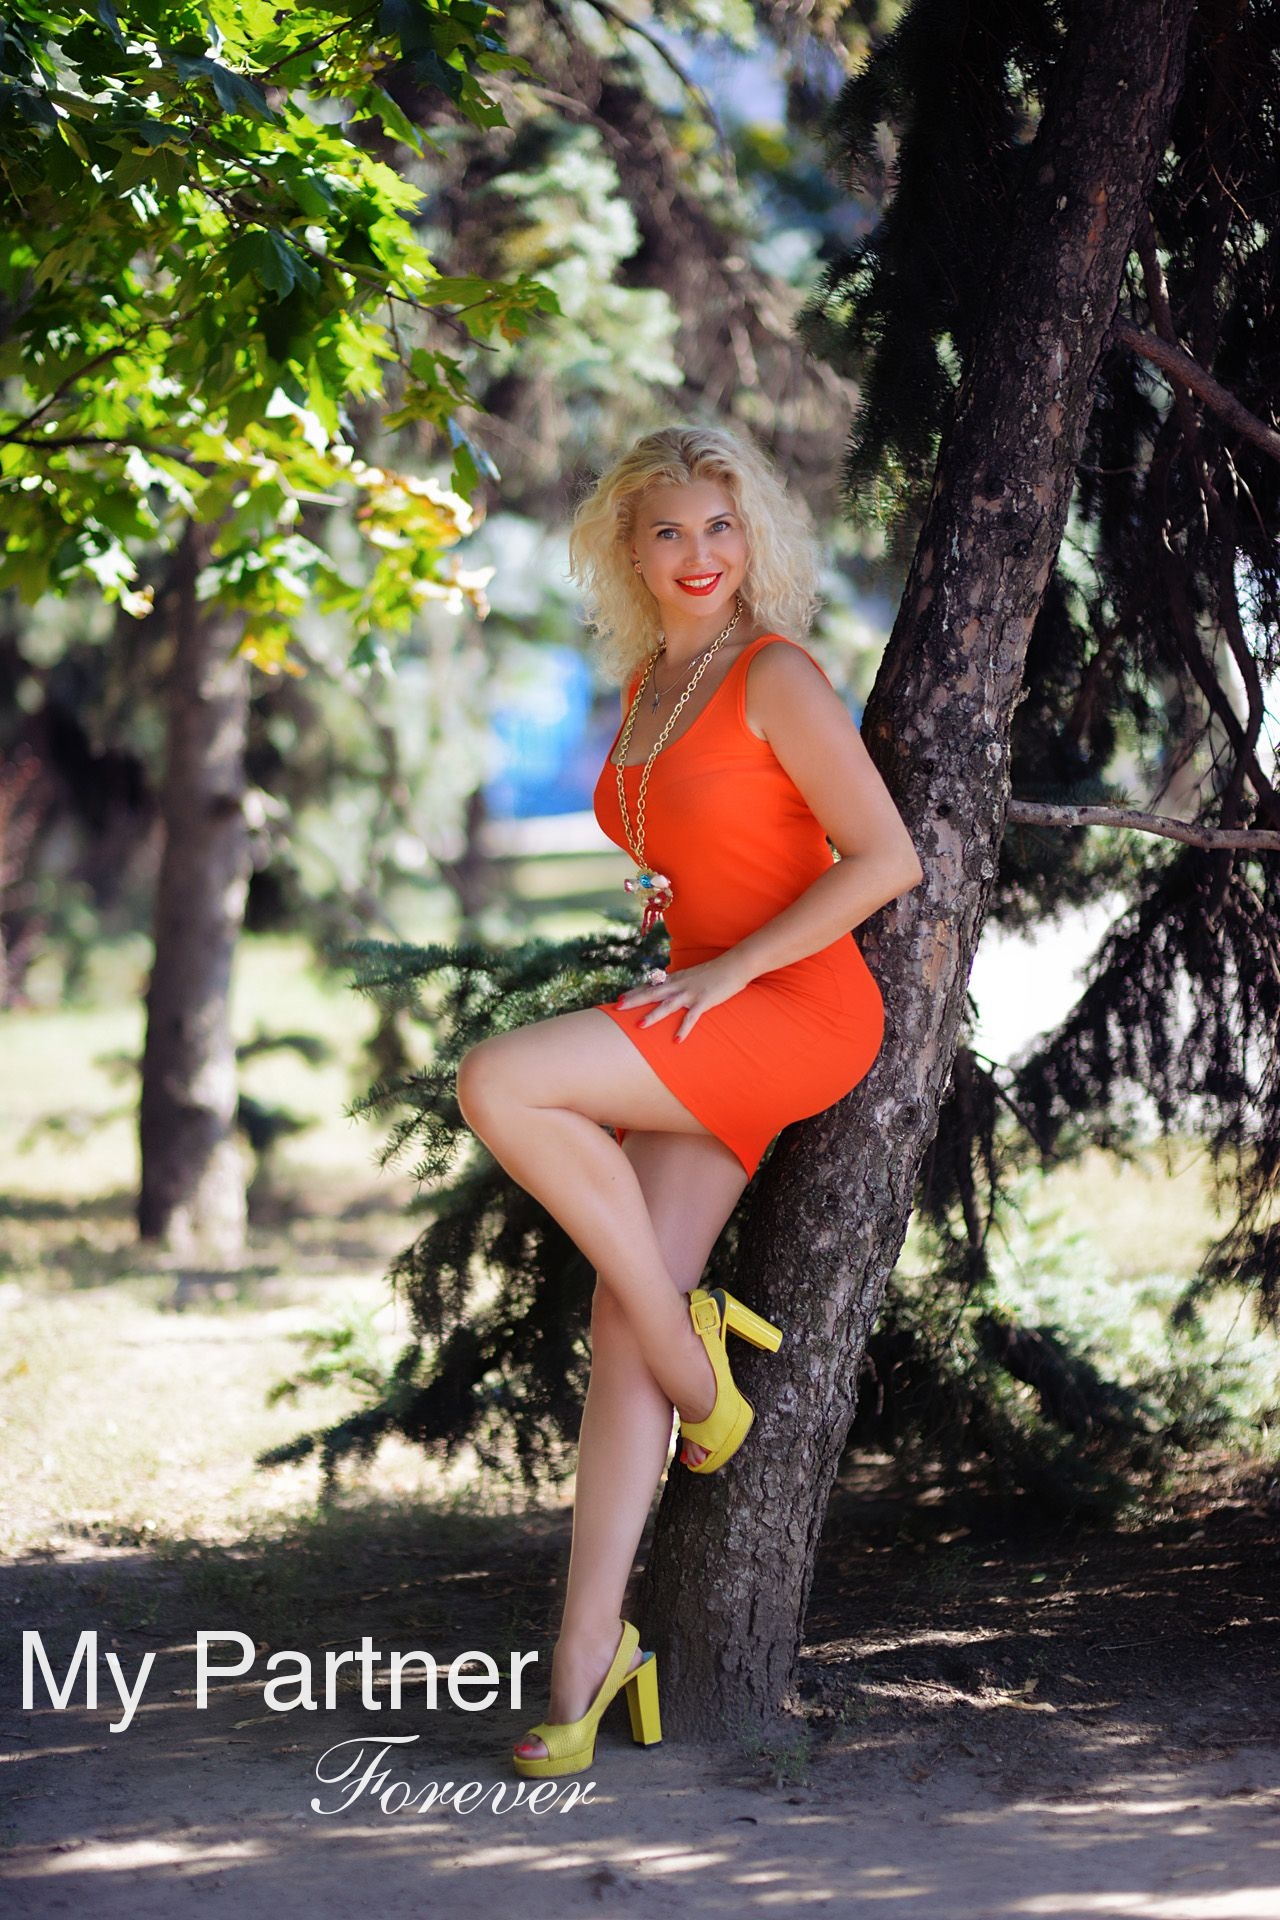 Beautiful Woman from Ukraine - Alina from Kharkov, Ukraine